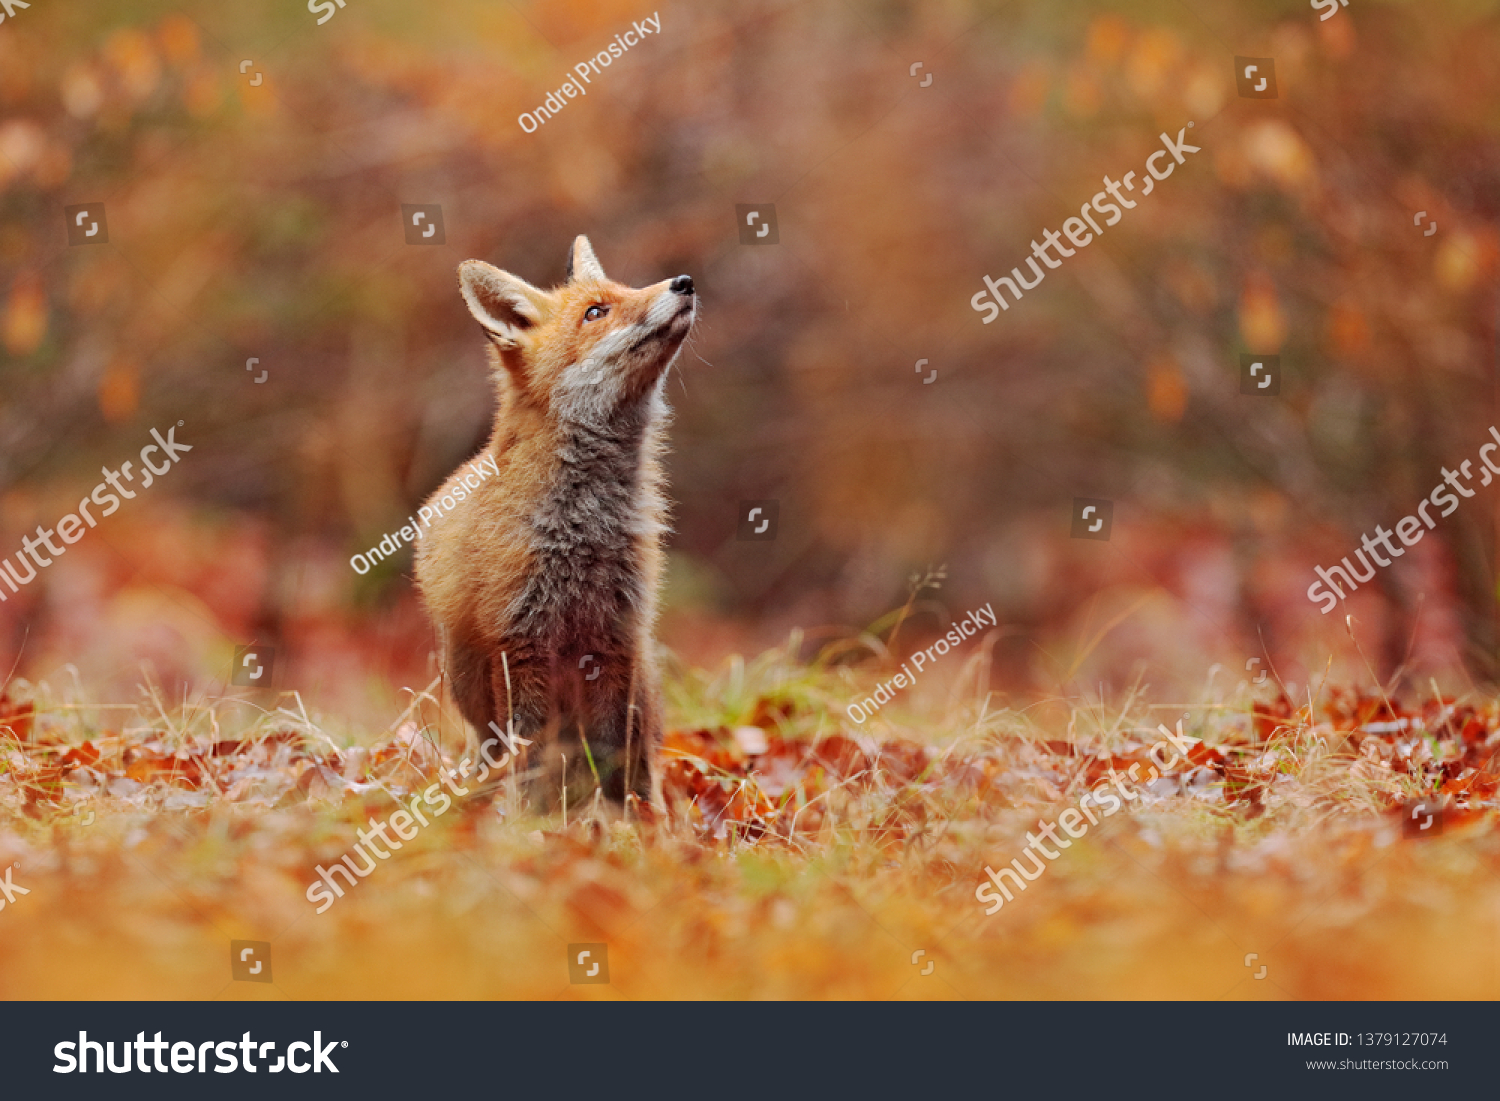 Cute Red Fox, Vulpes vulpes in fall forest. Beautiful animal in the nature habitat. Wildlife scene from the wild nature, Germany, Europe. Cute animal in habitat. Red fox running on orange autumn leave #1379127074